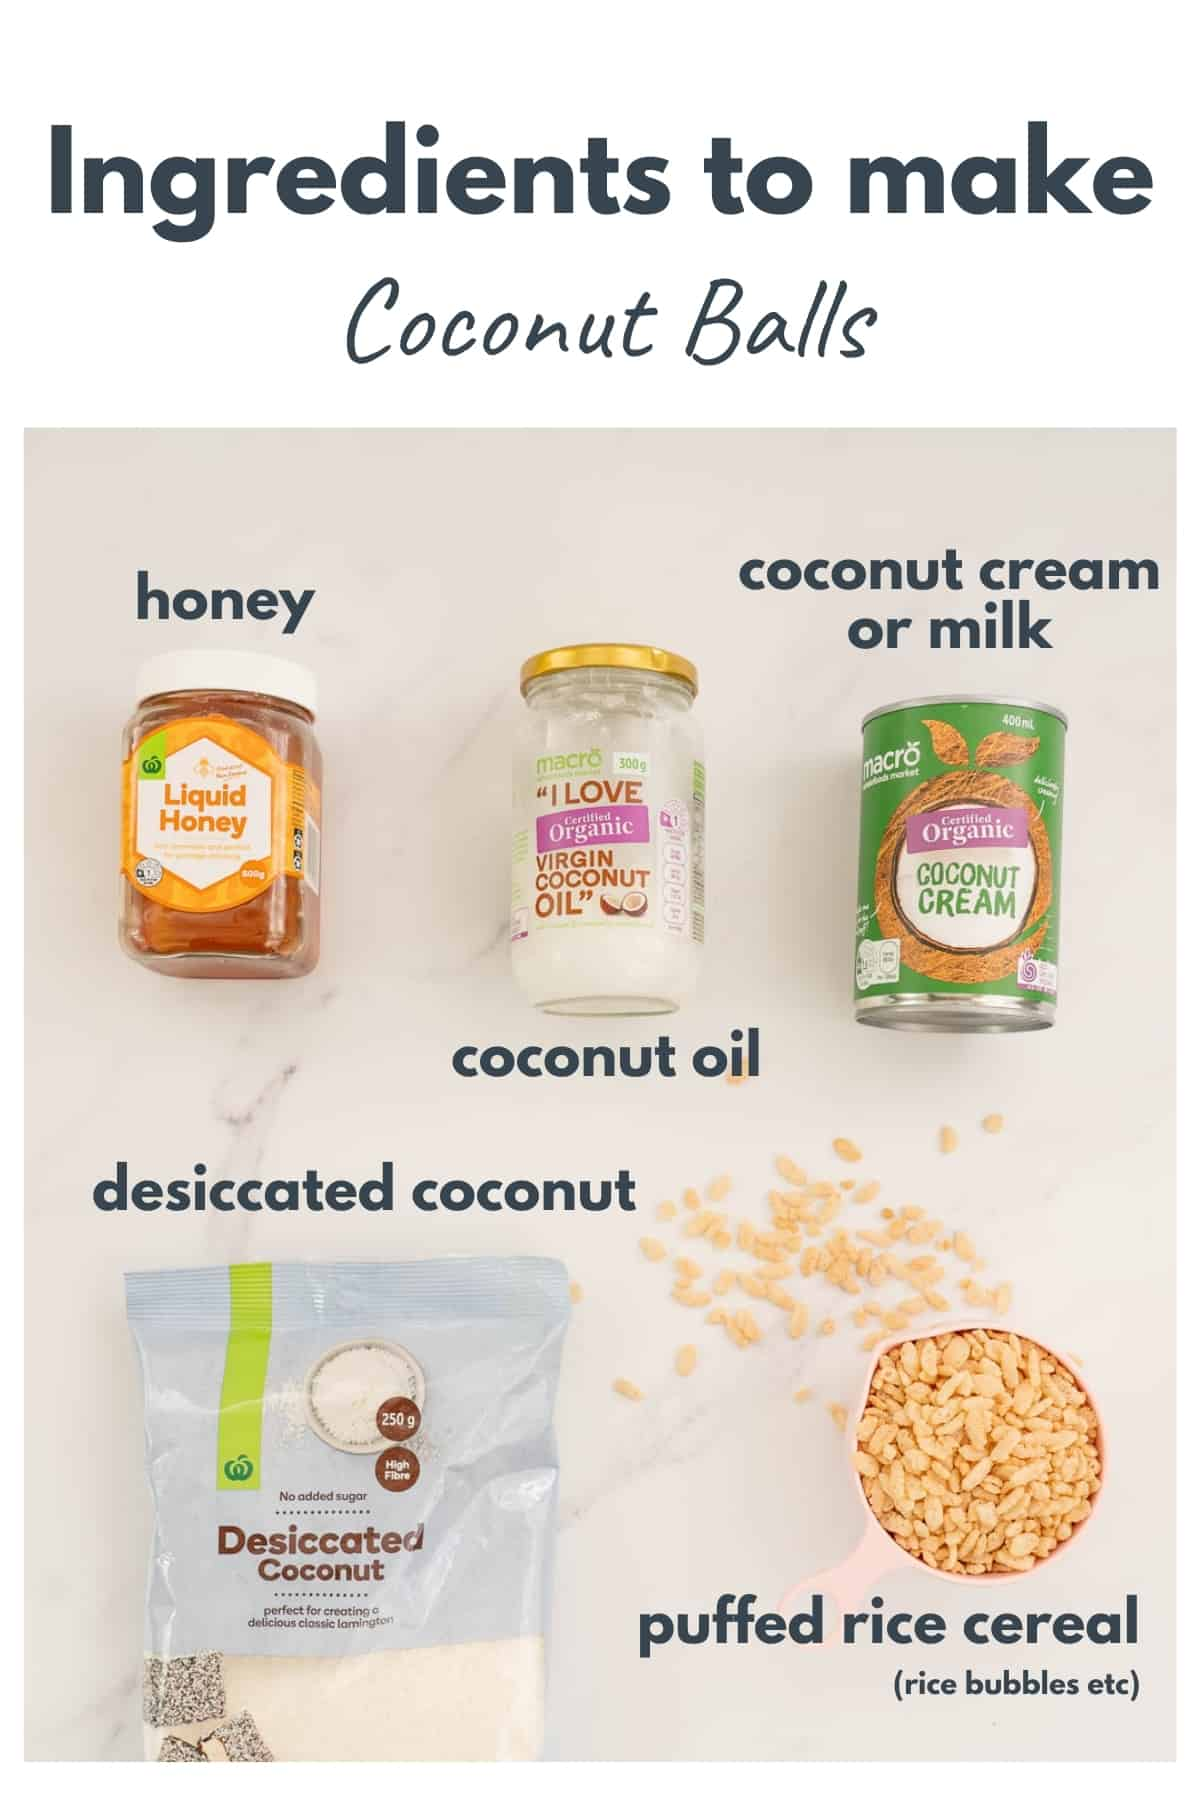 The ingredients to make coconut balls laid out on a bench top with text overlay.